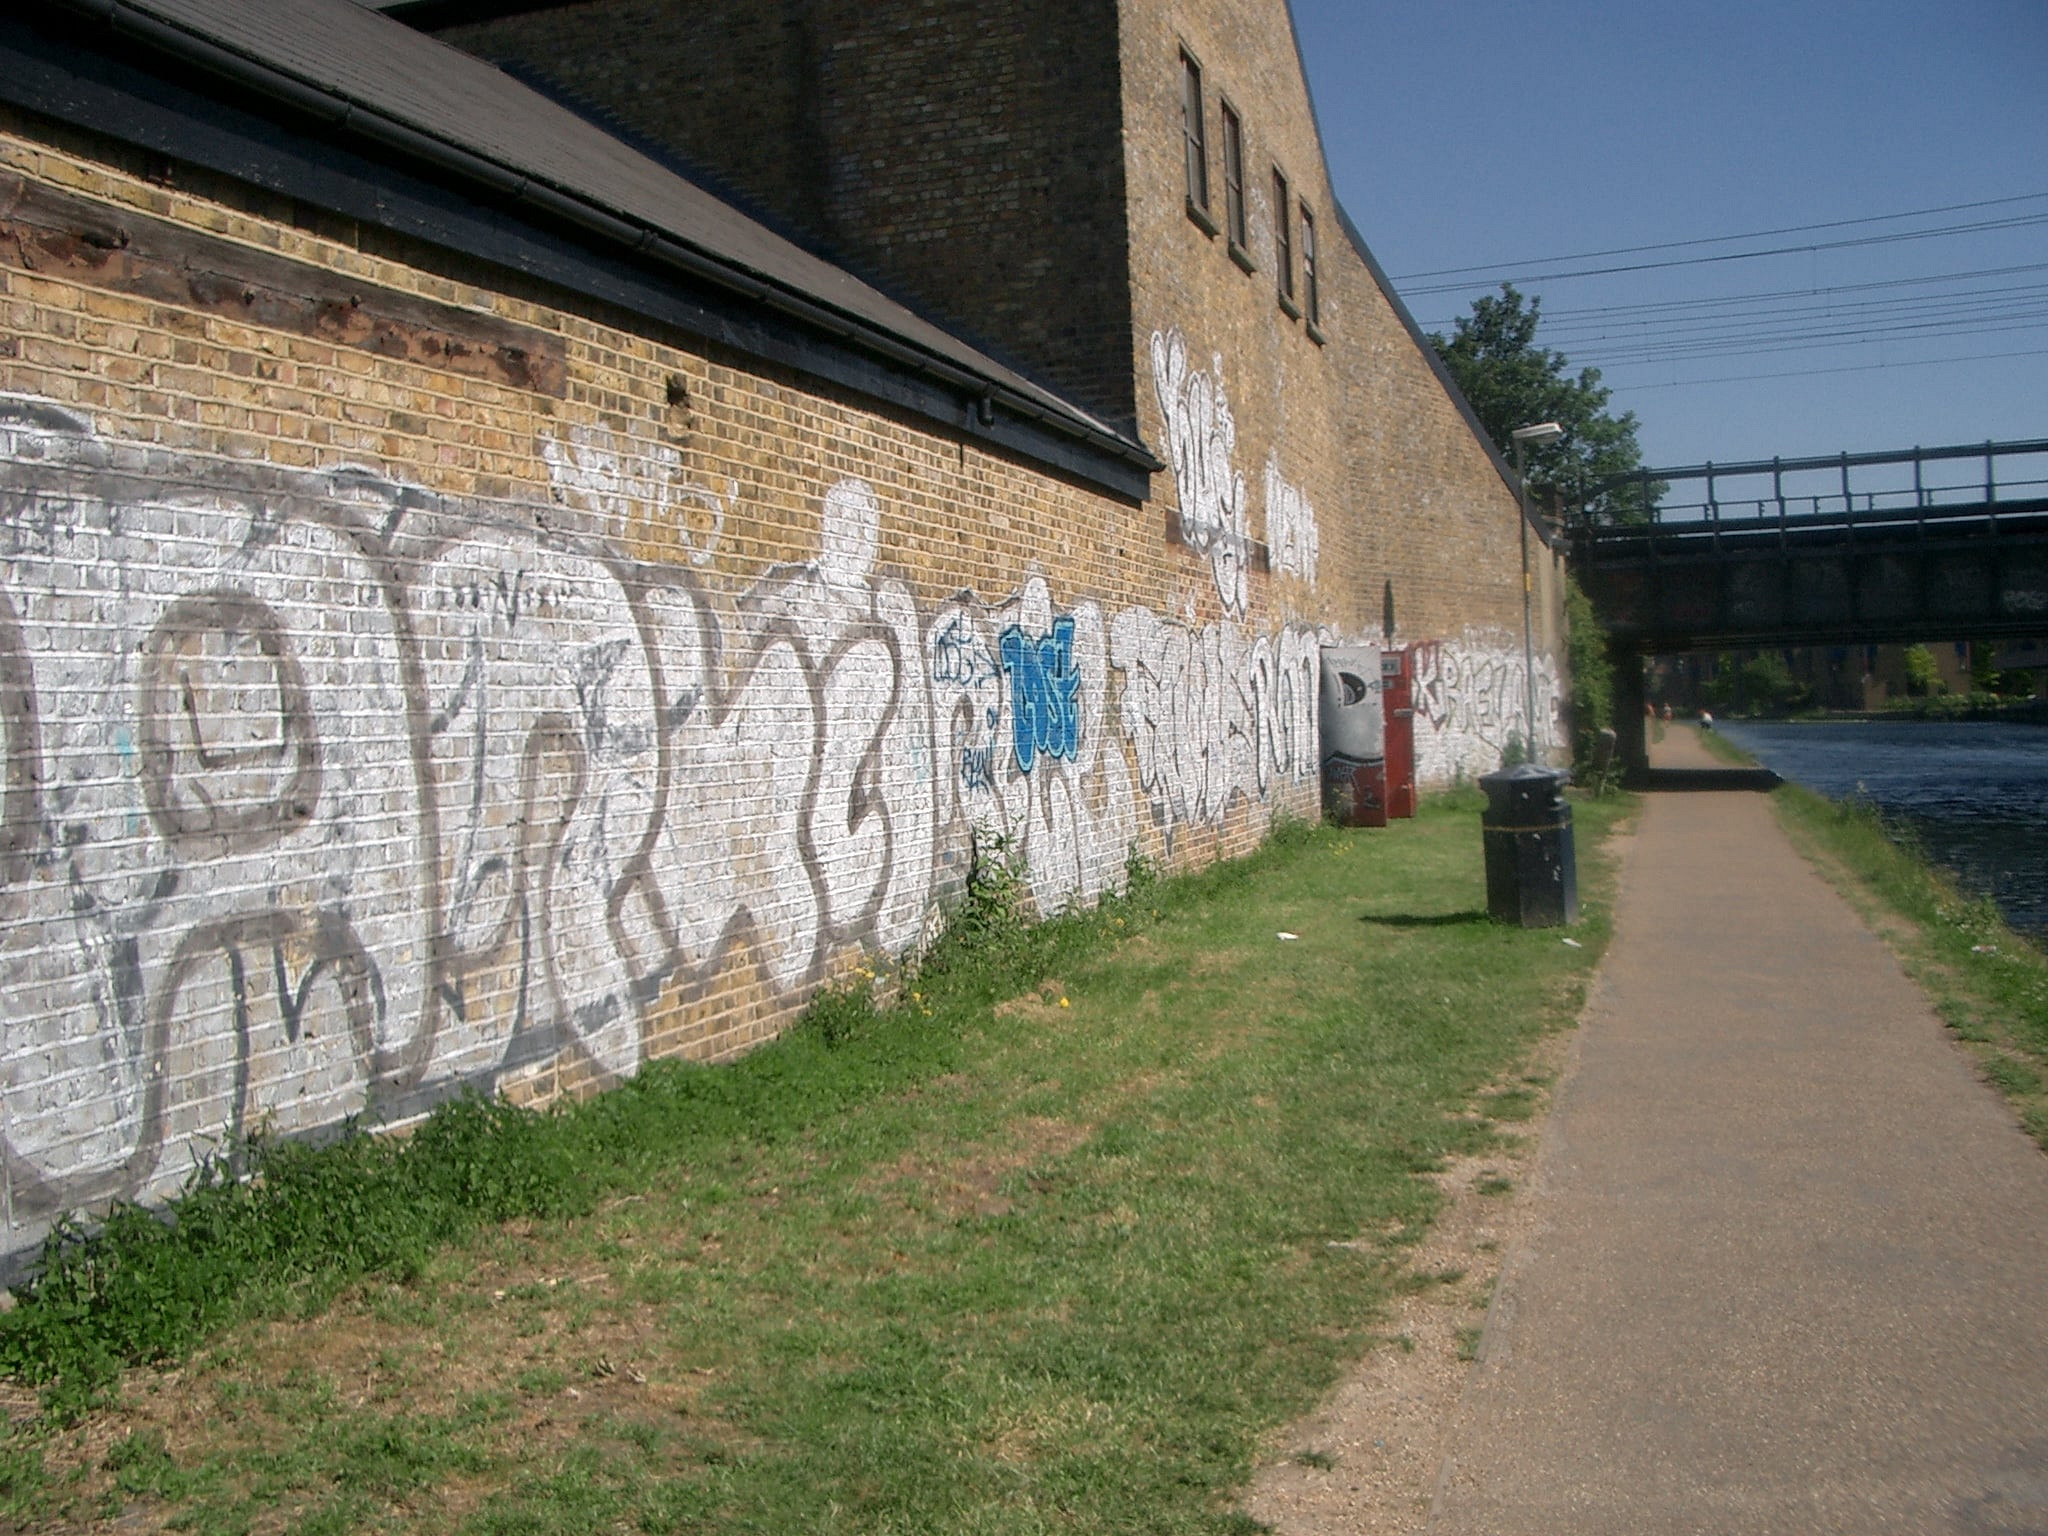 Canal tagging